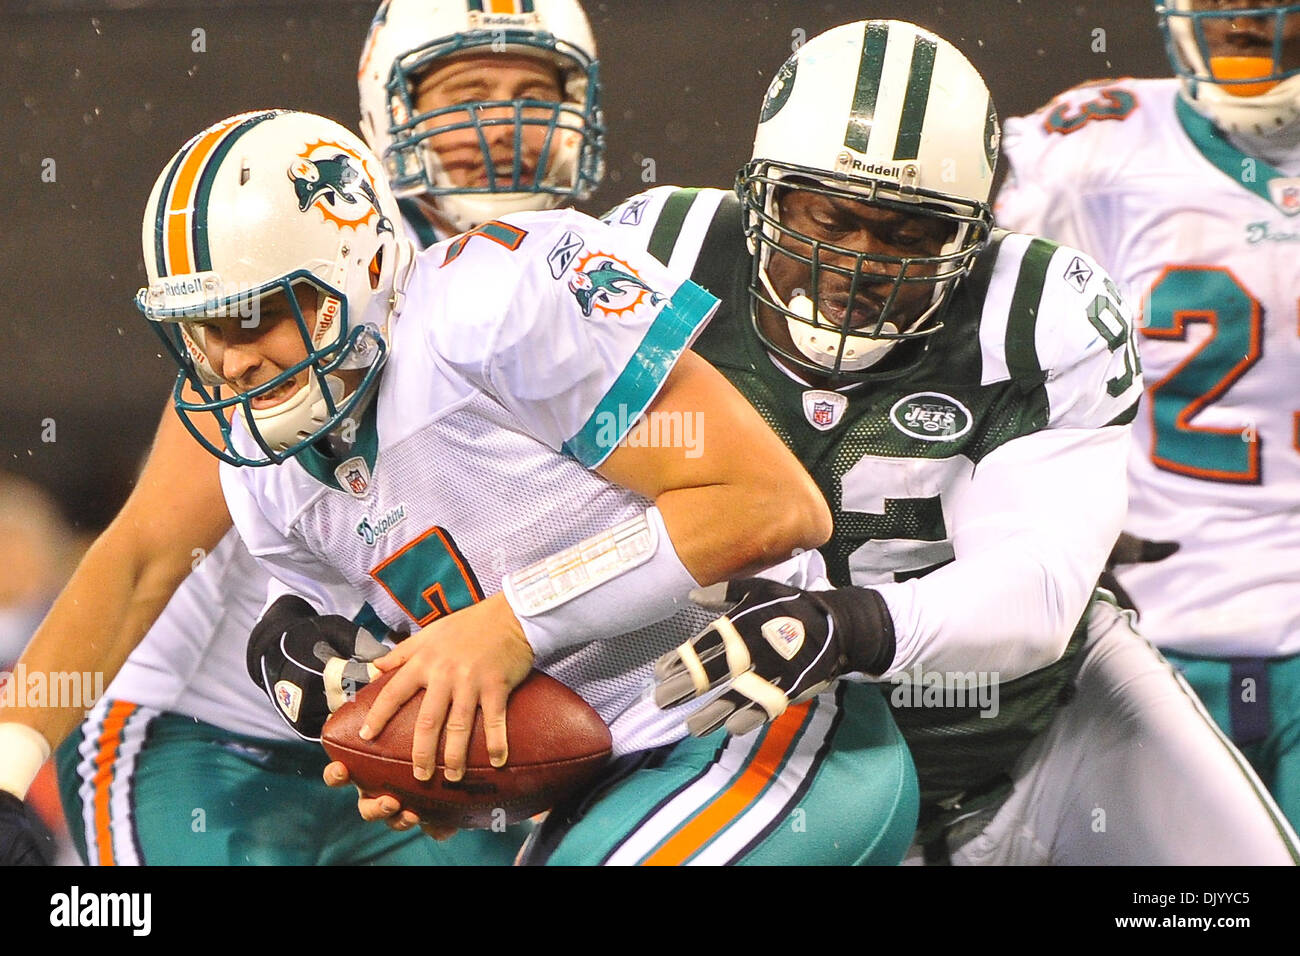 c5b42e191 ... 2010 - East Rutherford, New Jersey, United States of America - Miami  ... Chad Henne ...